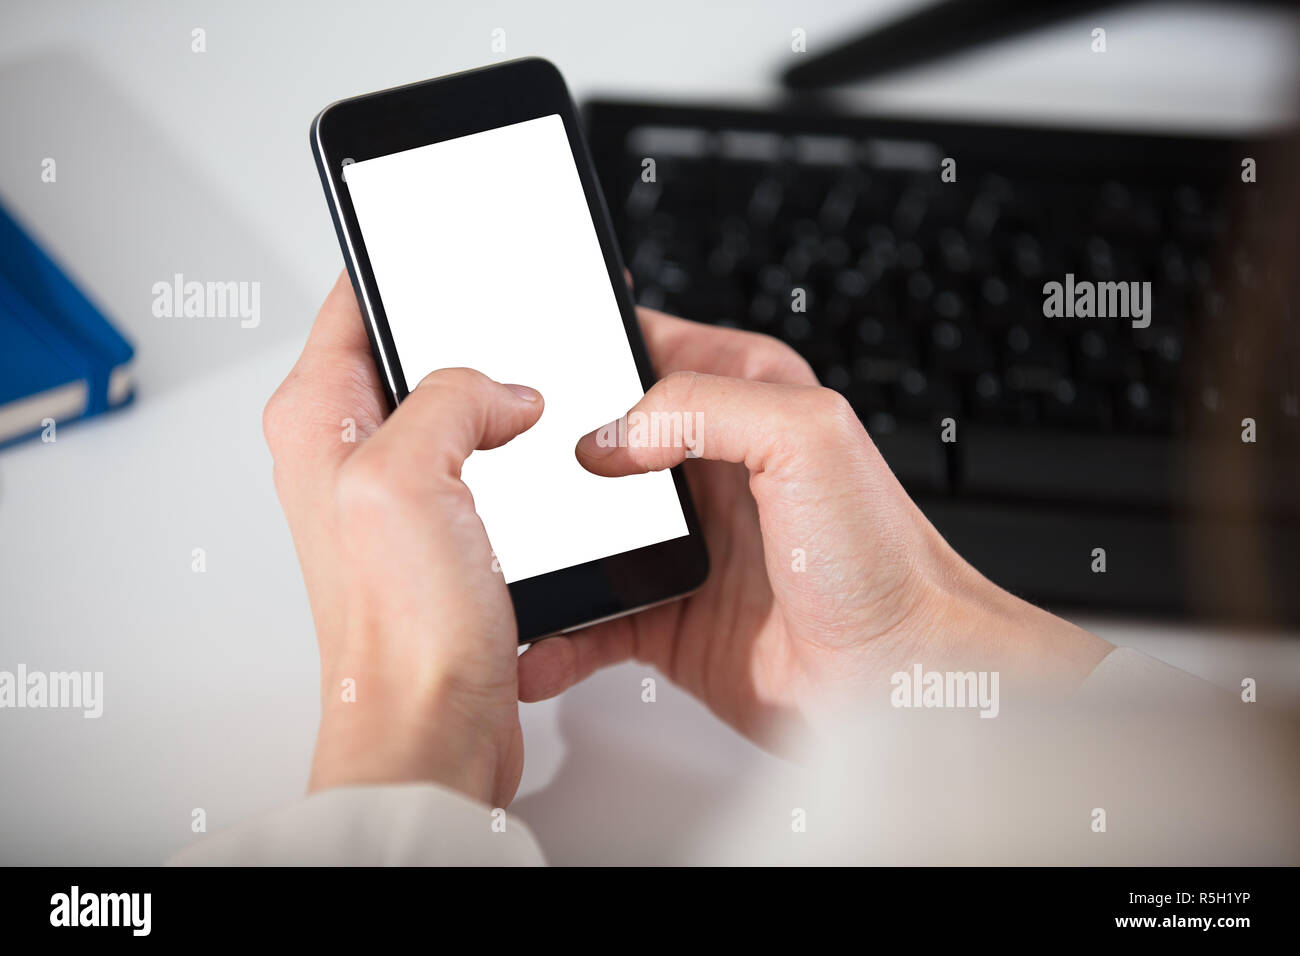 Person's Hand Holding Smart Phone Banque D'Images